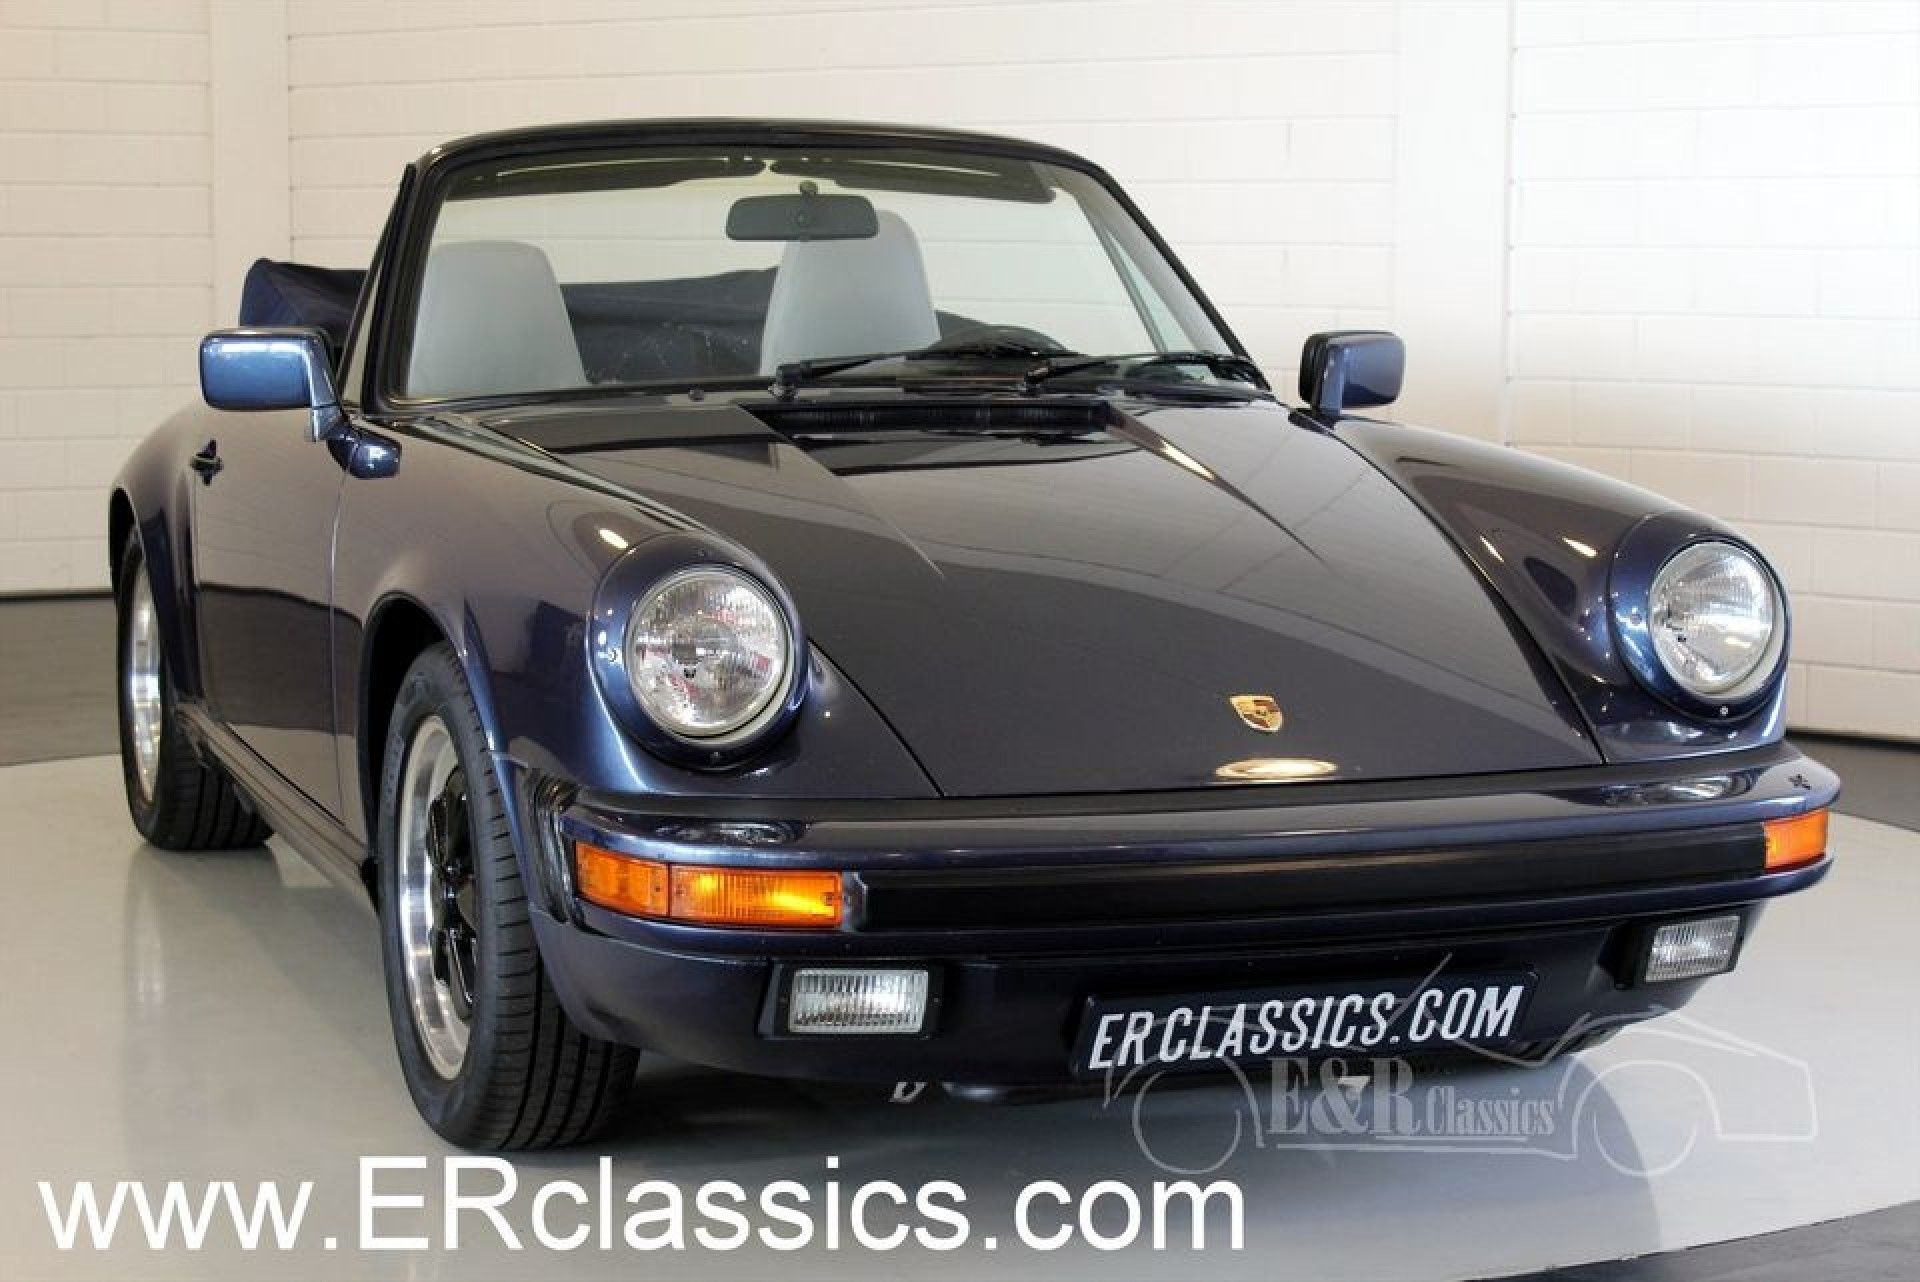 porsche 911 carrera cabriolet 1986 vendre erclassics. Black Bedroom Furniture Sets. Home Design Ideas